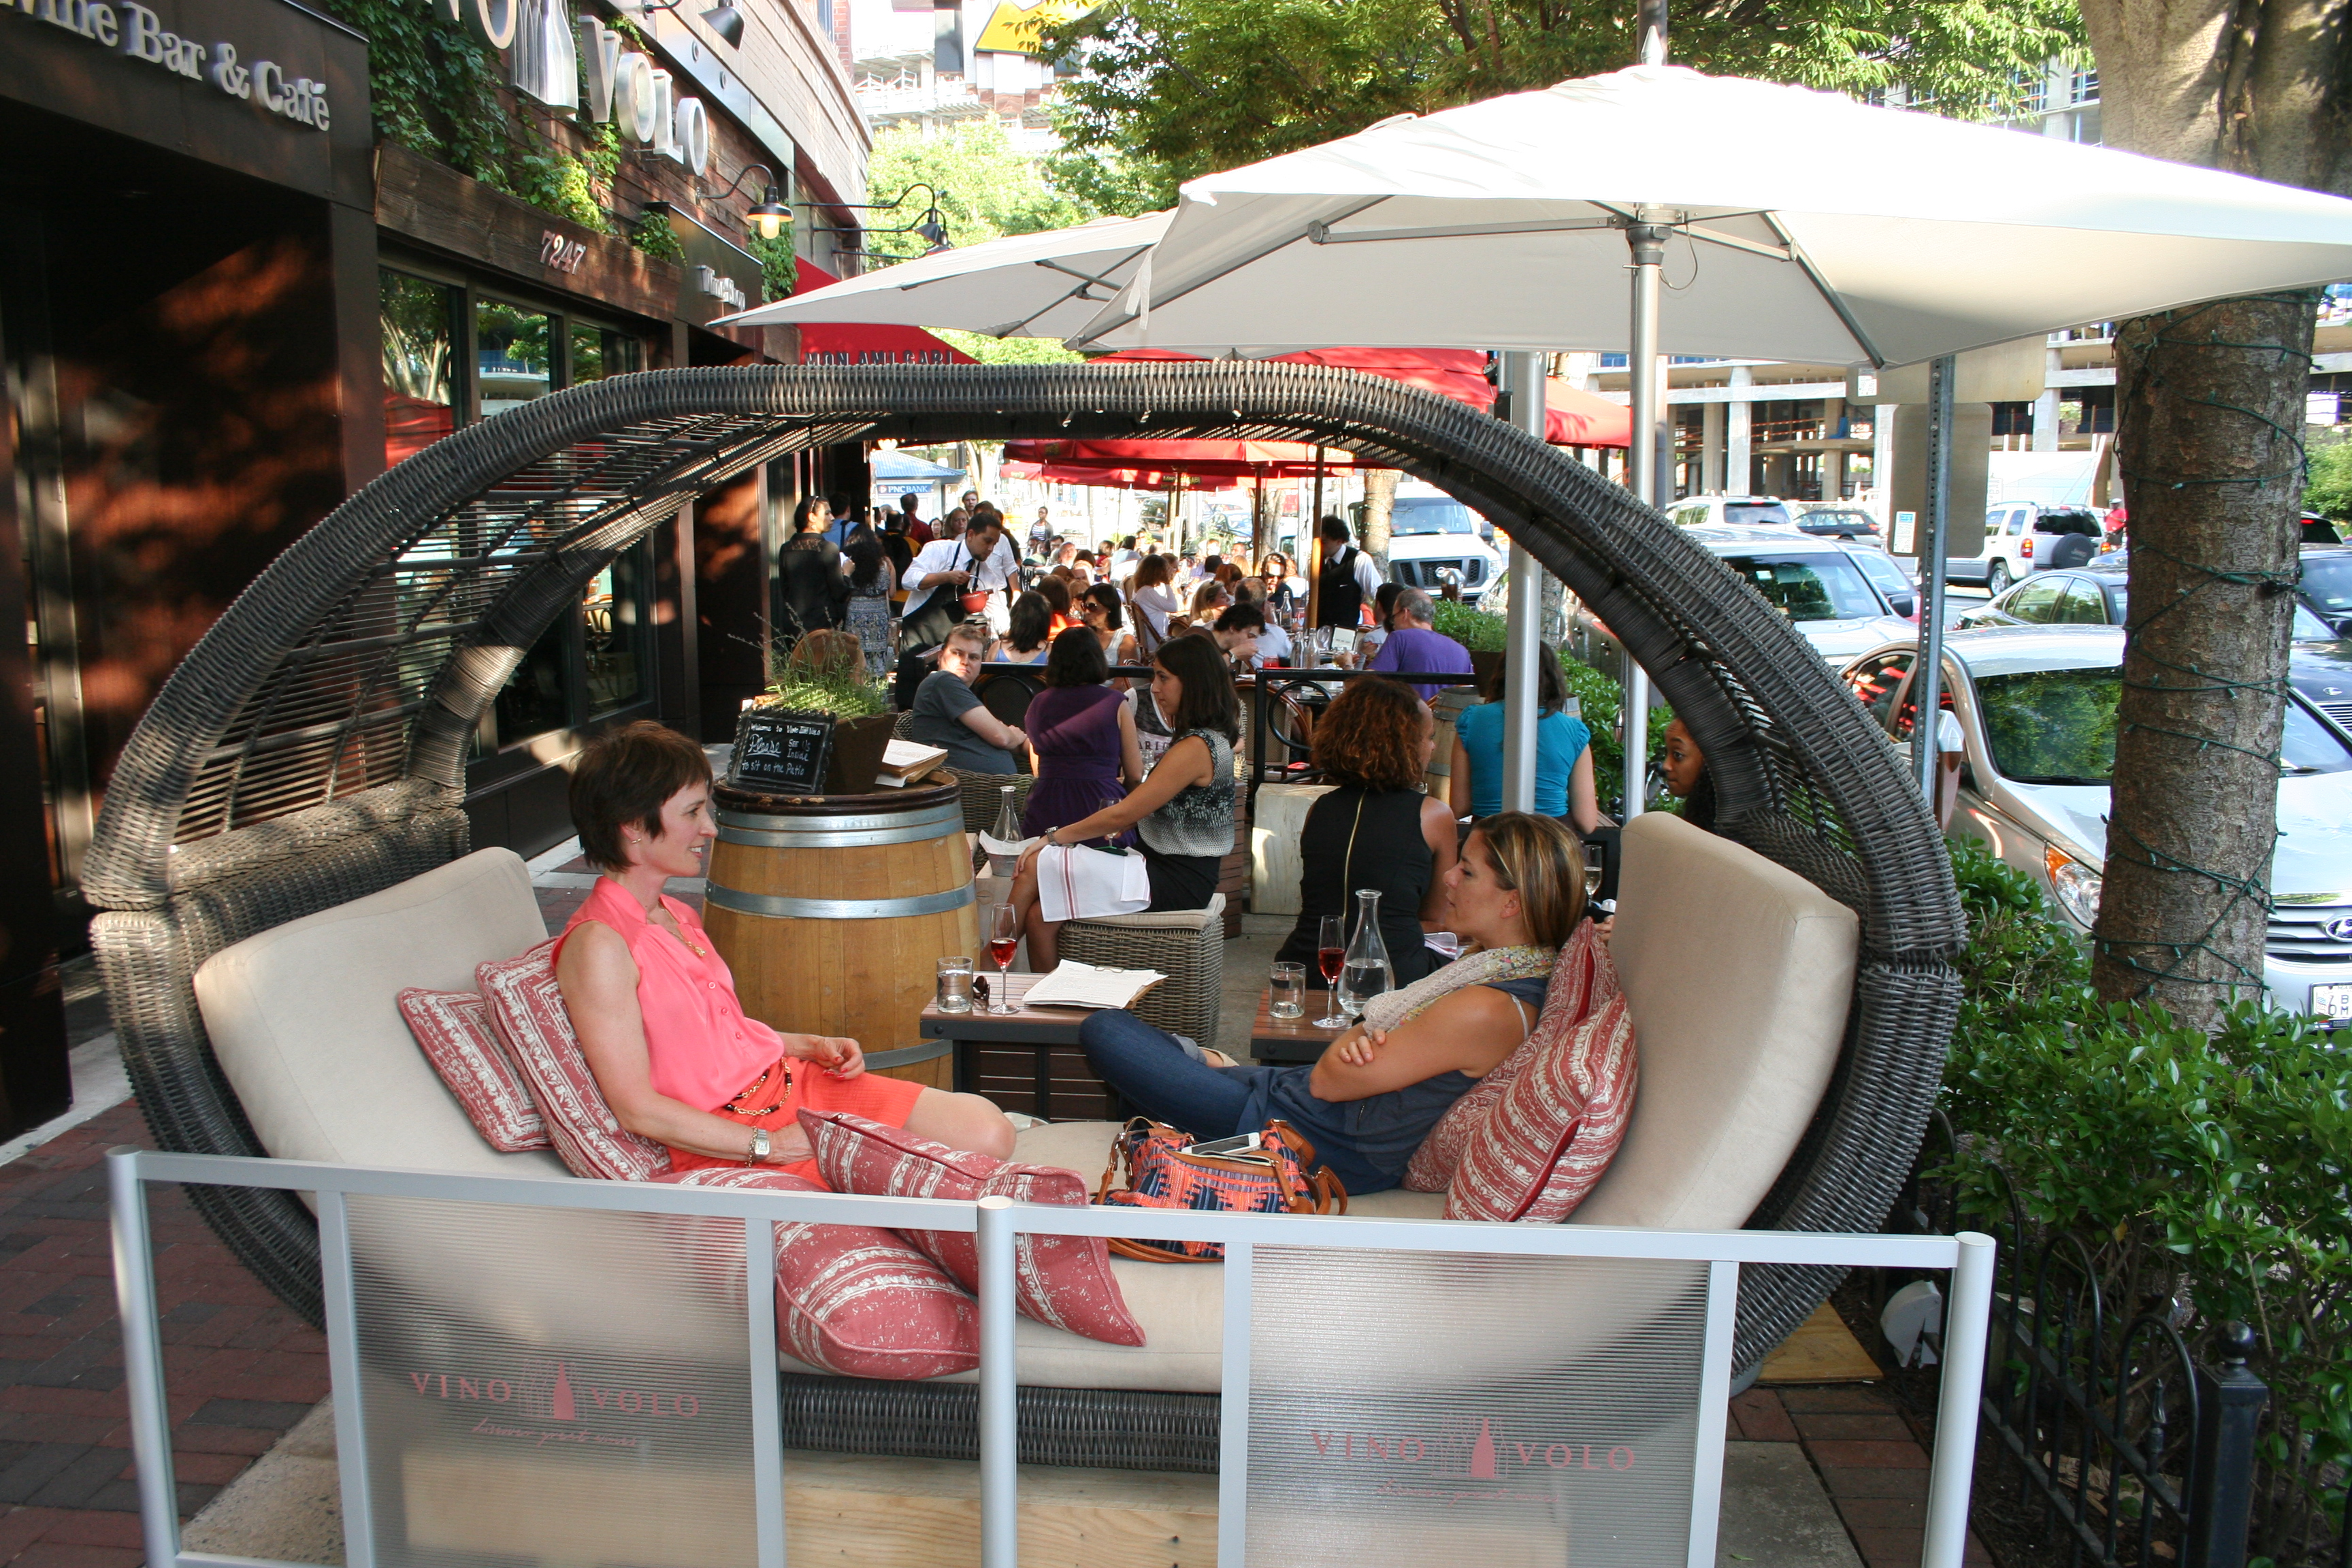 Relax on Vino Volo's outdoor patio with a glass of wine and a bite from the new small plates menu. (Photo: Mark Heckathorn/DC on Heels)